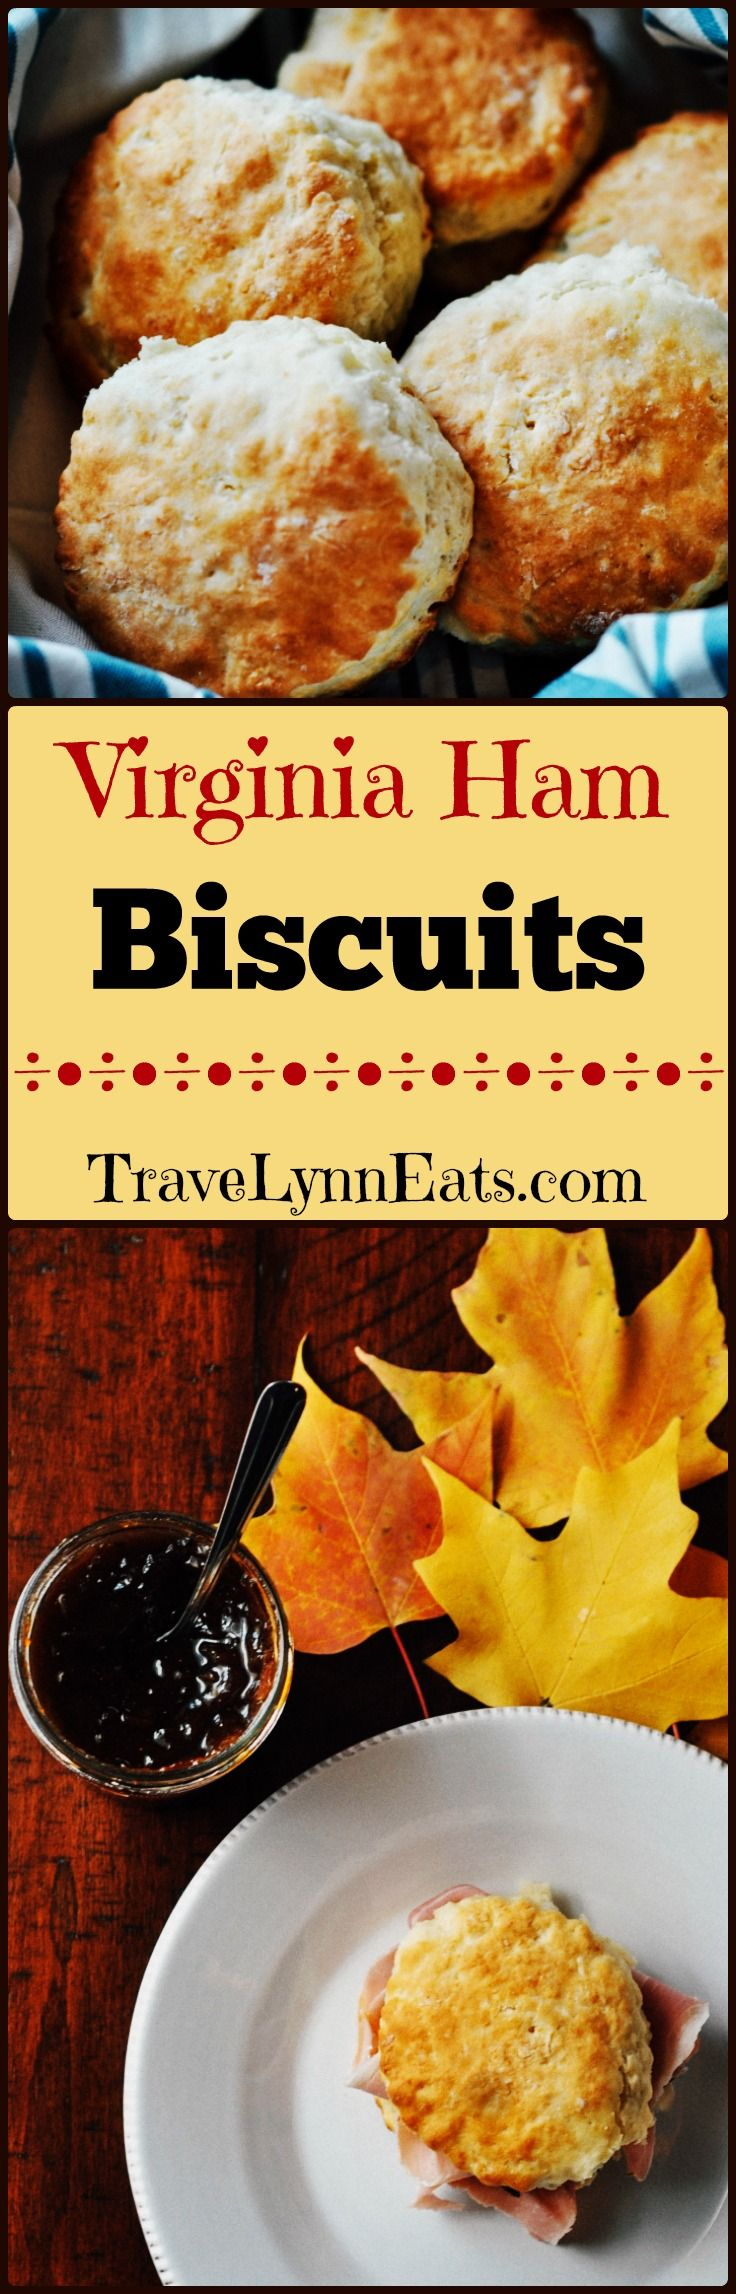 Virginia ham biscuits. A southern staple. Brunch, lunch, dinner, tailgate party, reception...whatever the occasion, you'll find these simple, tasty sandwiches on the menu.